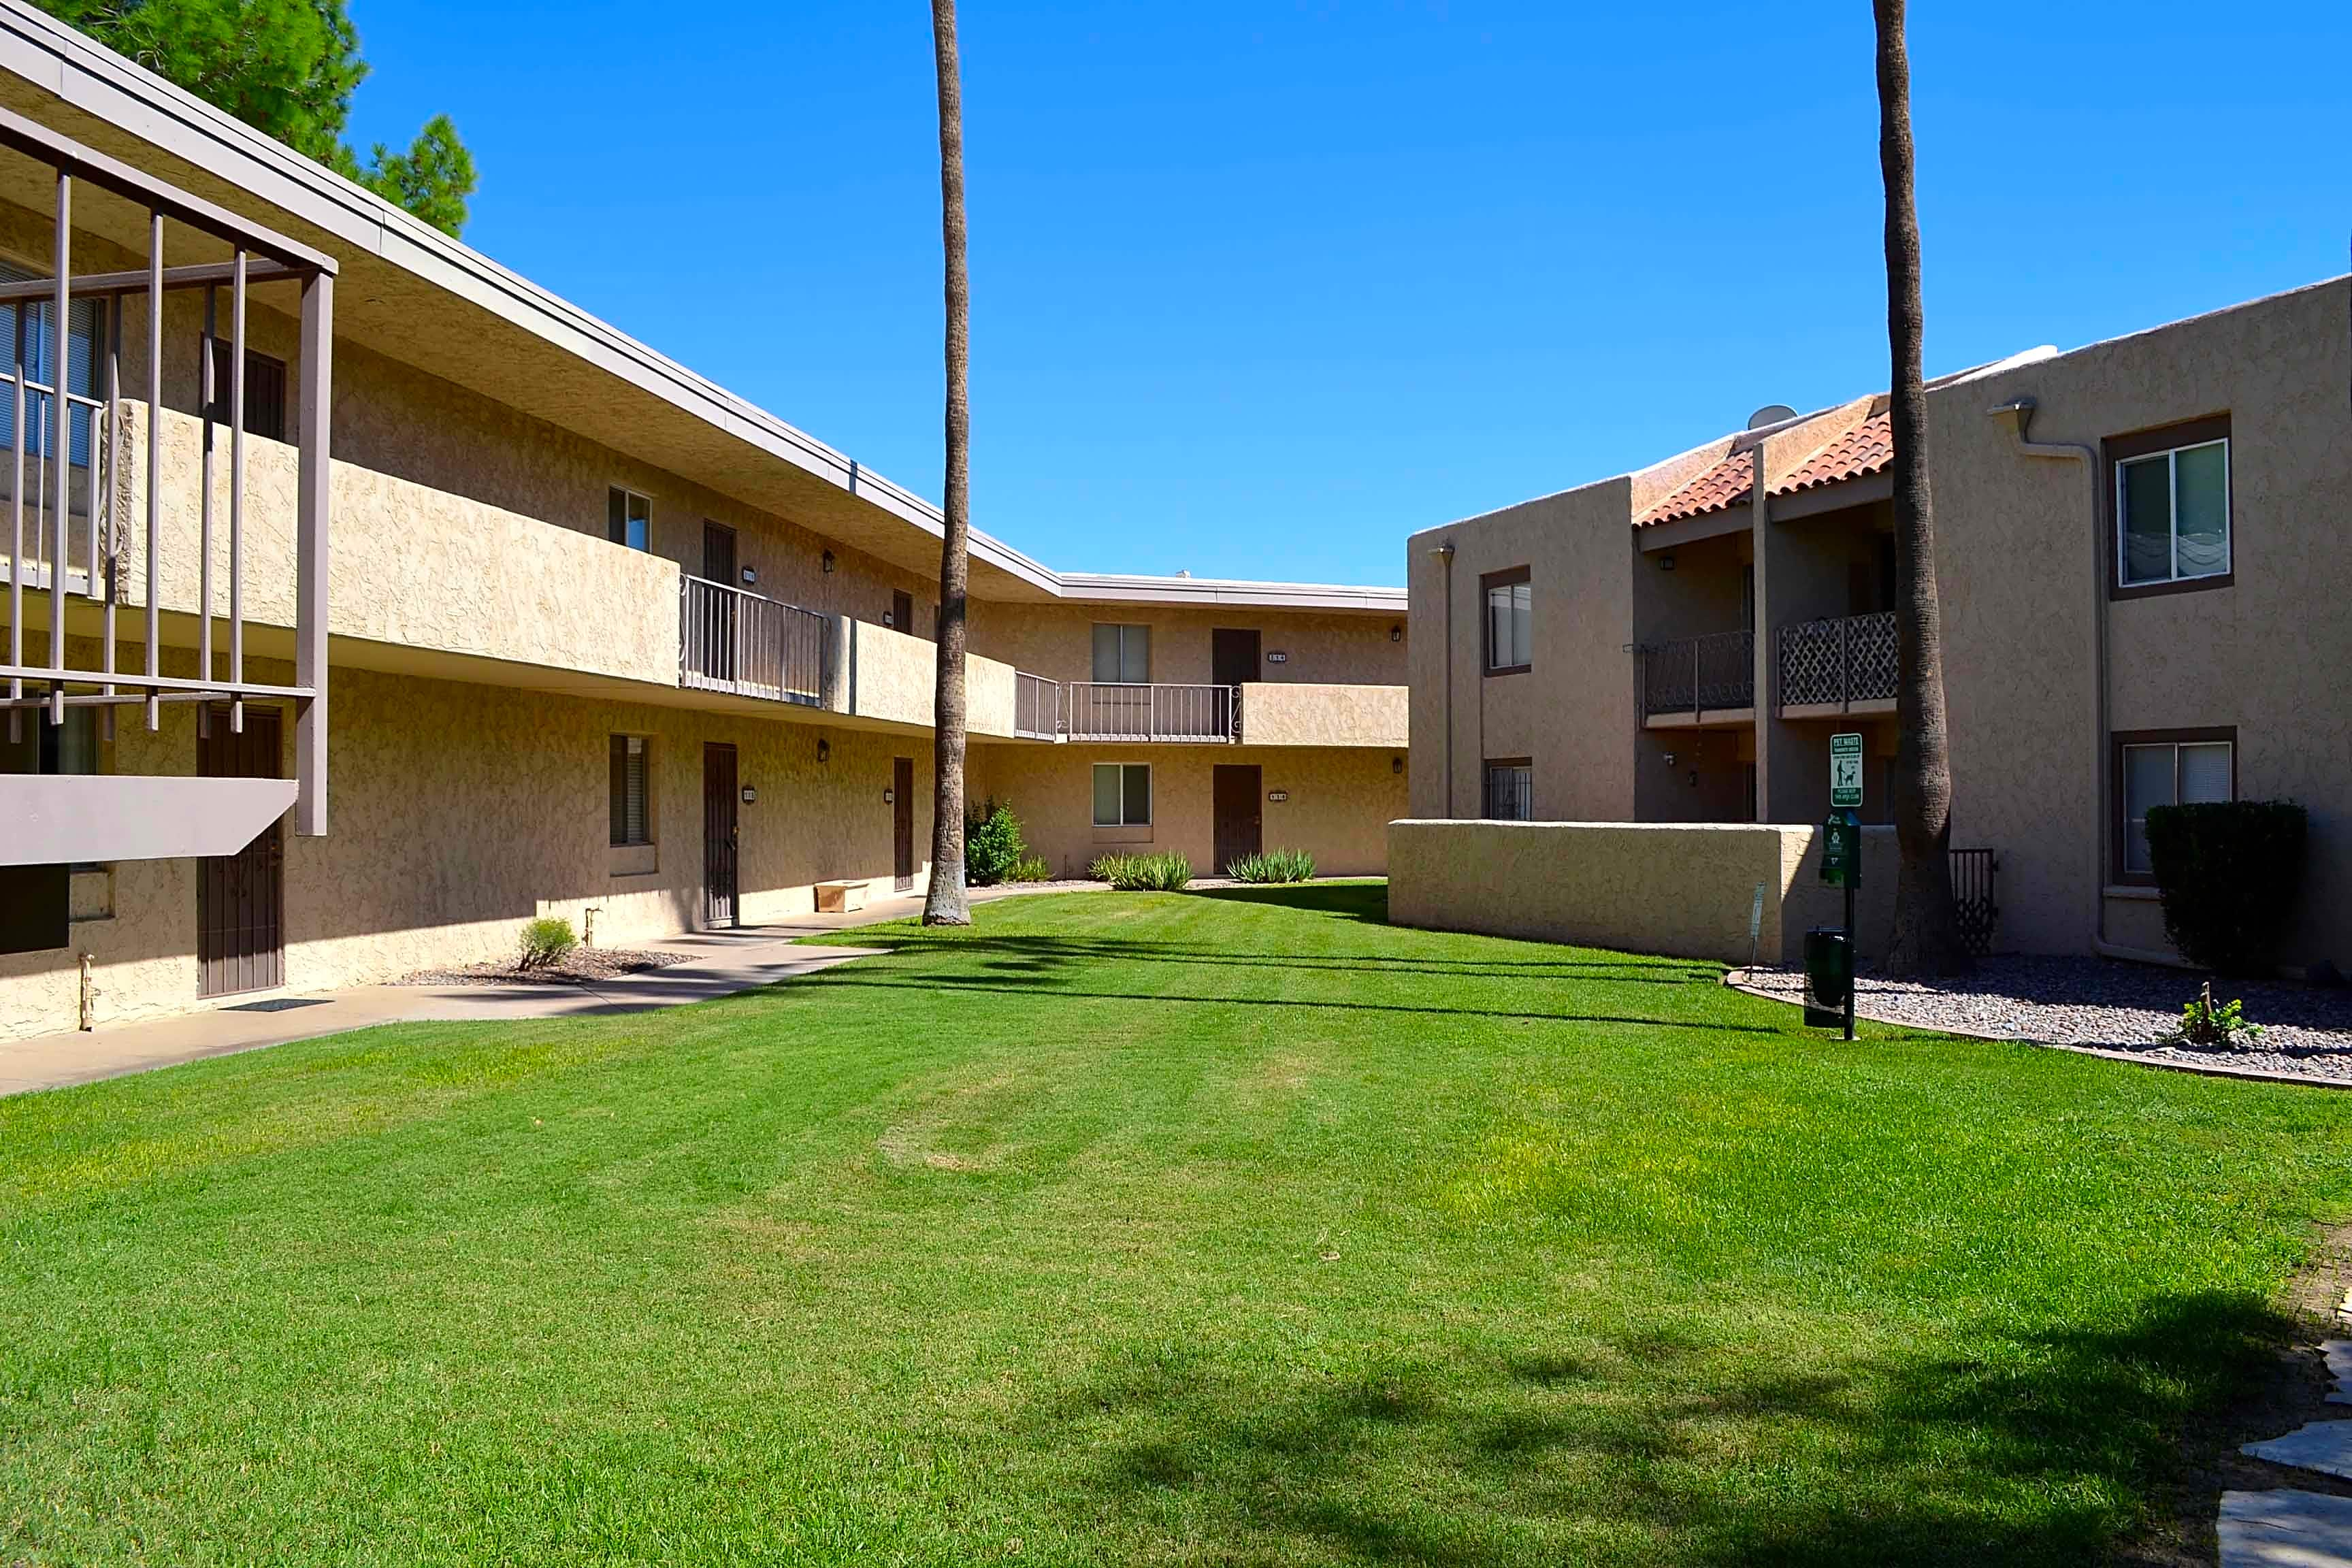 arizona houses for rent in arizona homes for rent apartments